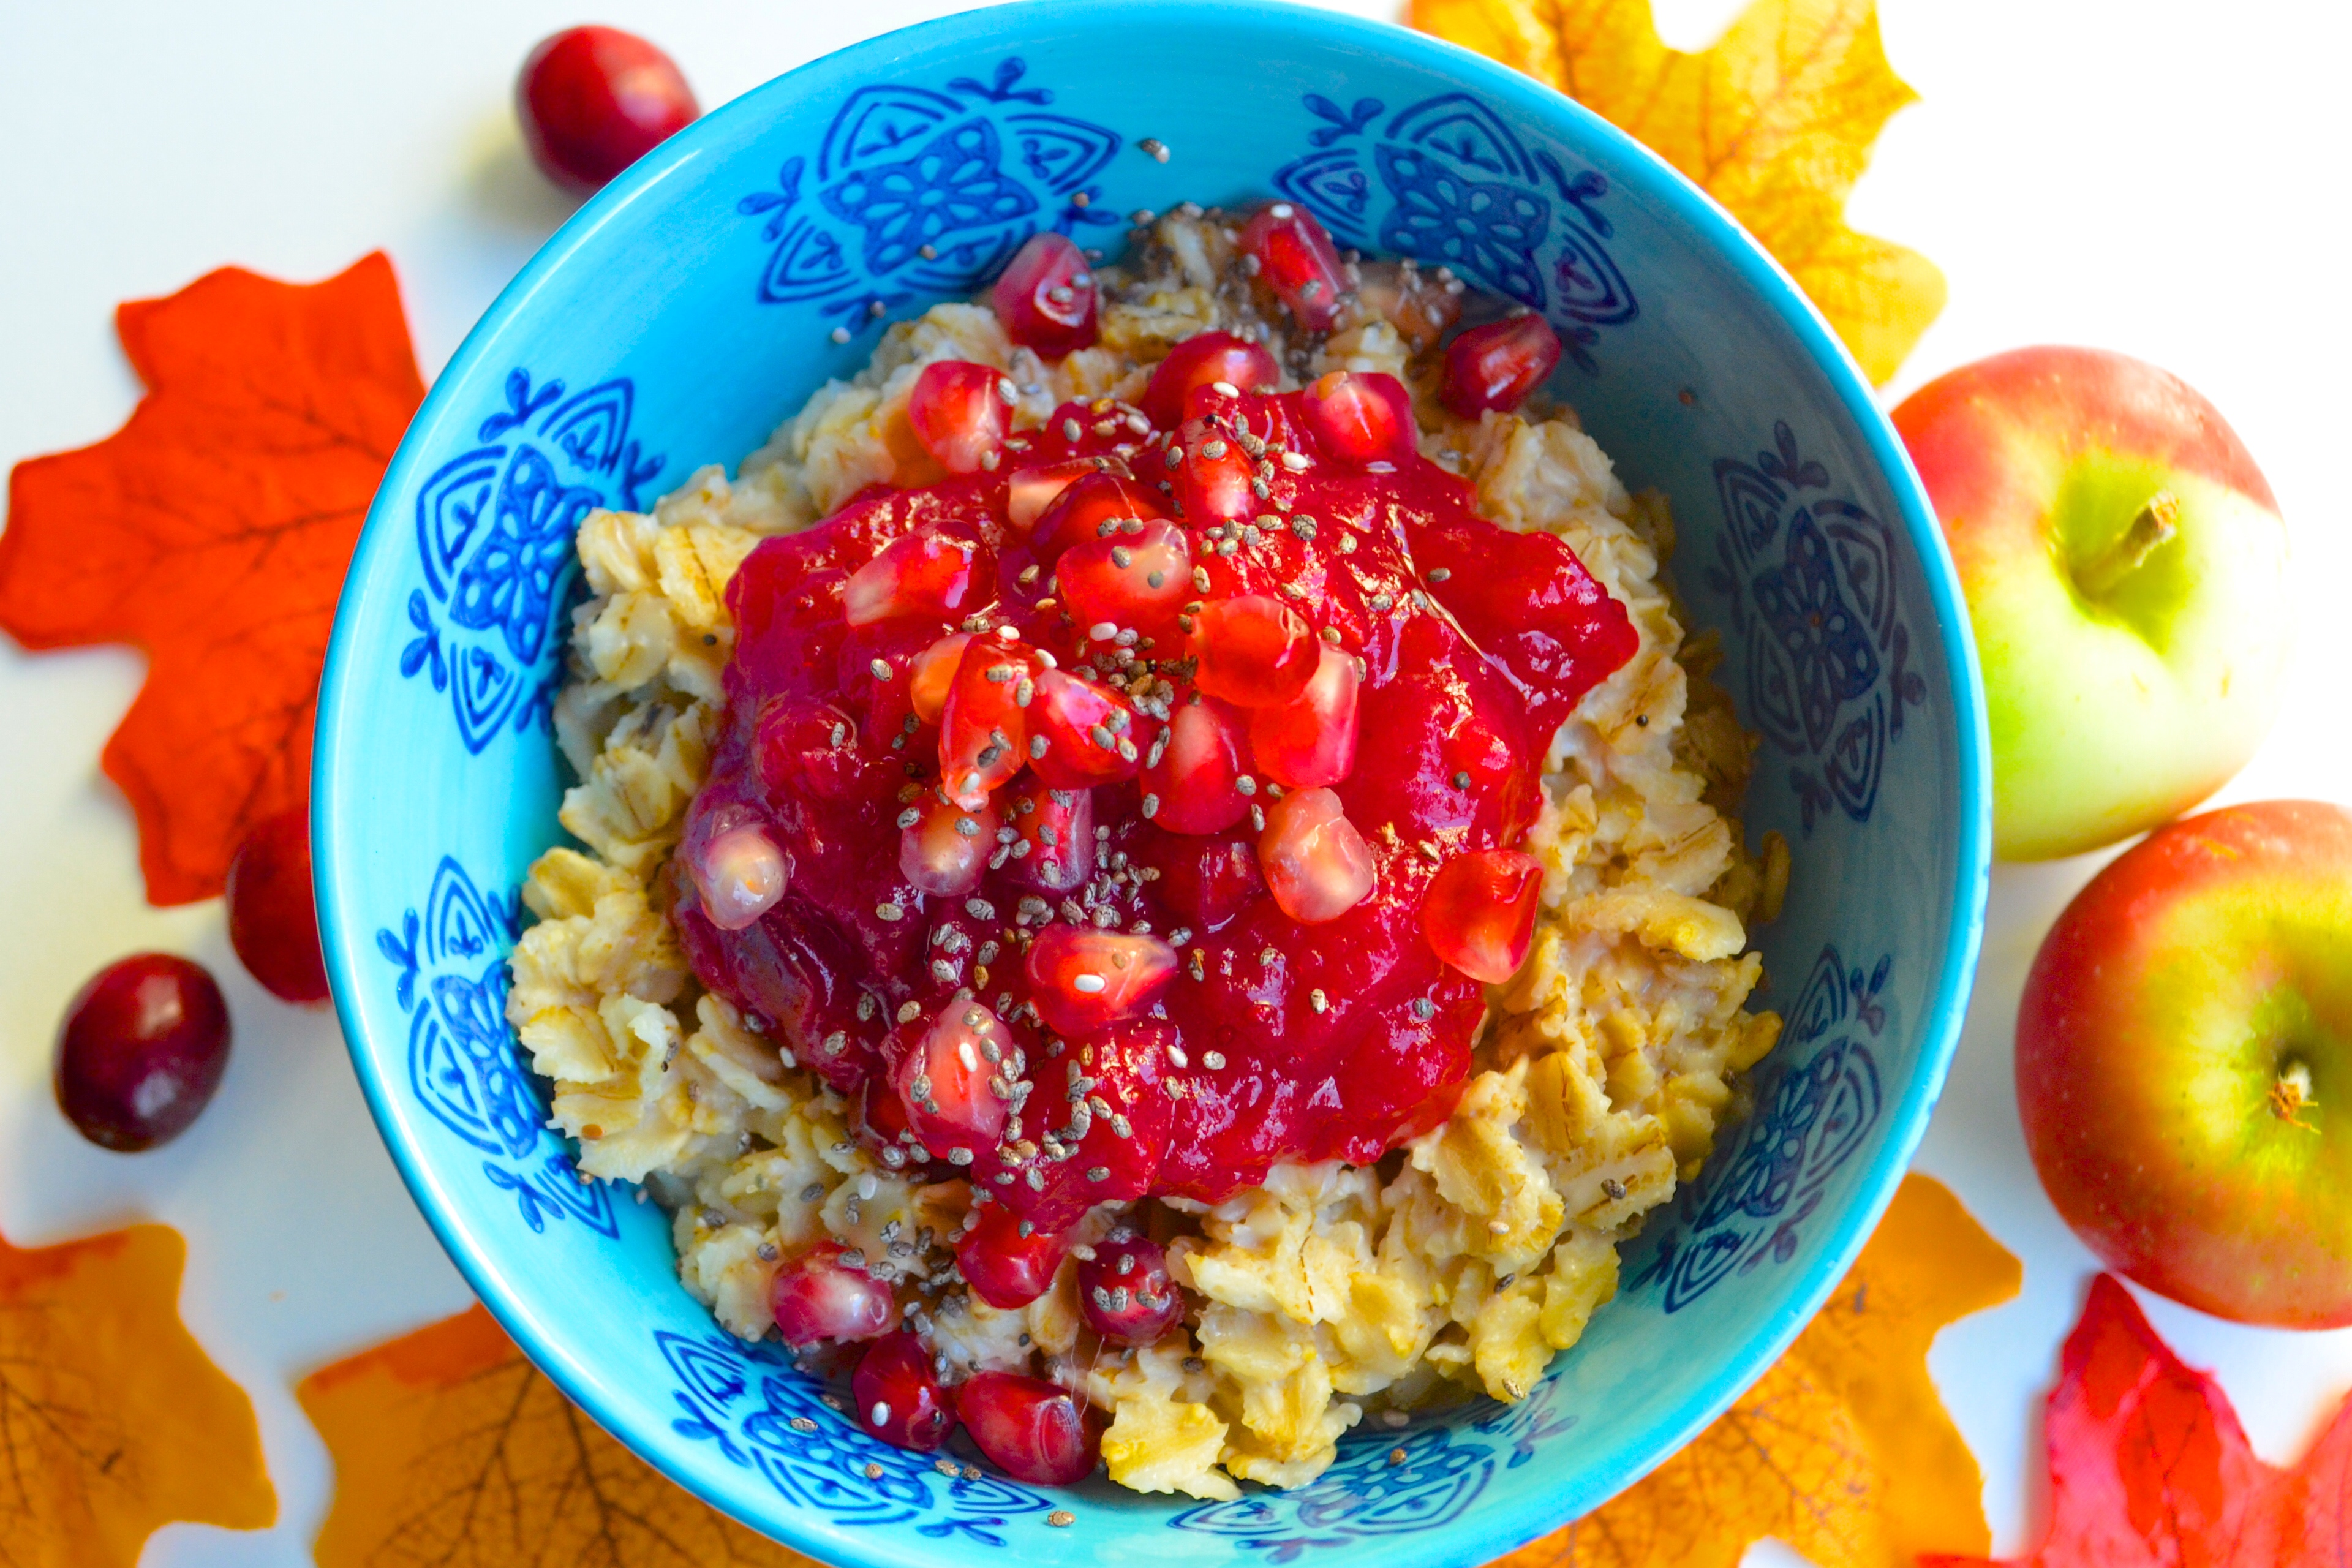 Dr Fuhrman Eat to Live Nutritarian Diet Plan Breakfast Day 44 MyMommaToldMe.com